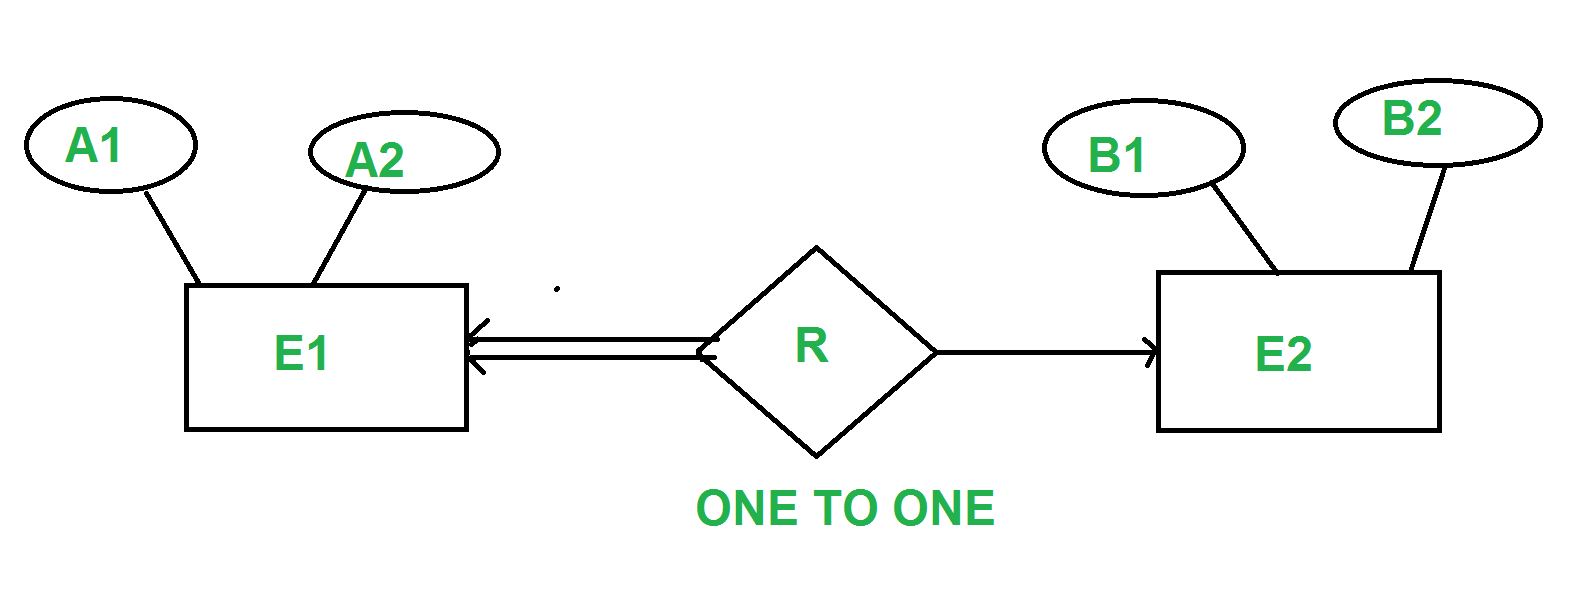 Minimization Of Er Diagrams - Geeksforgeeks within Er Diagram Dbms